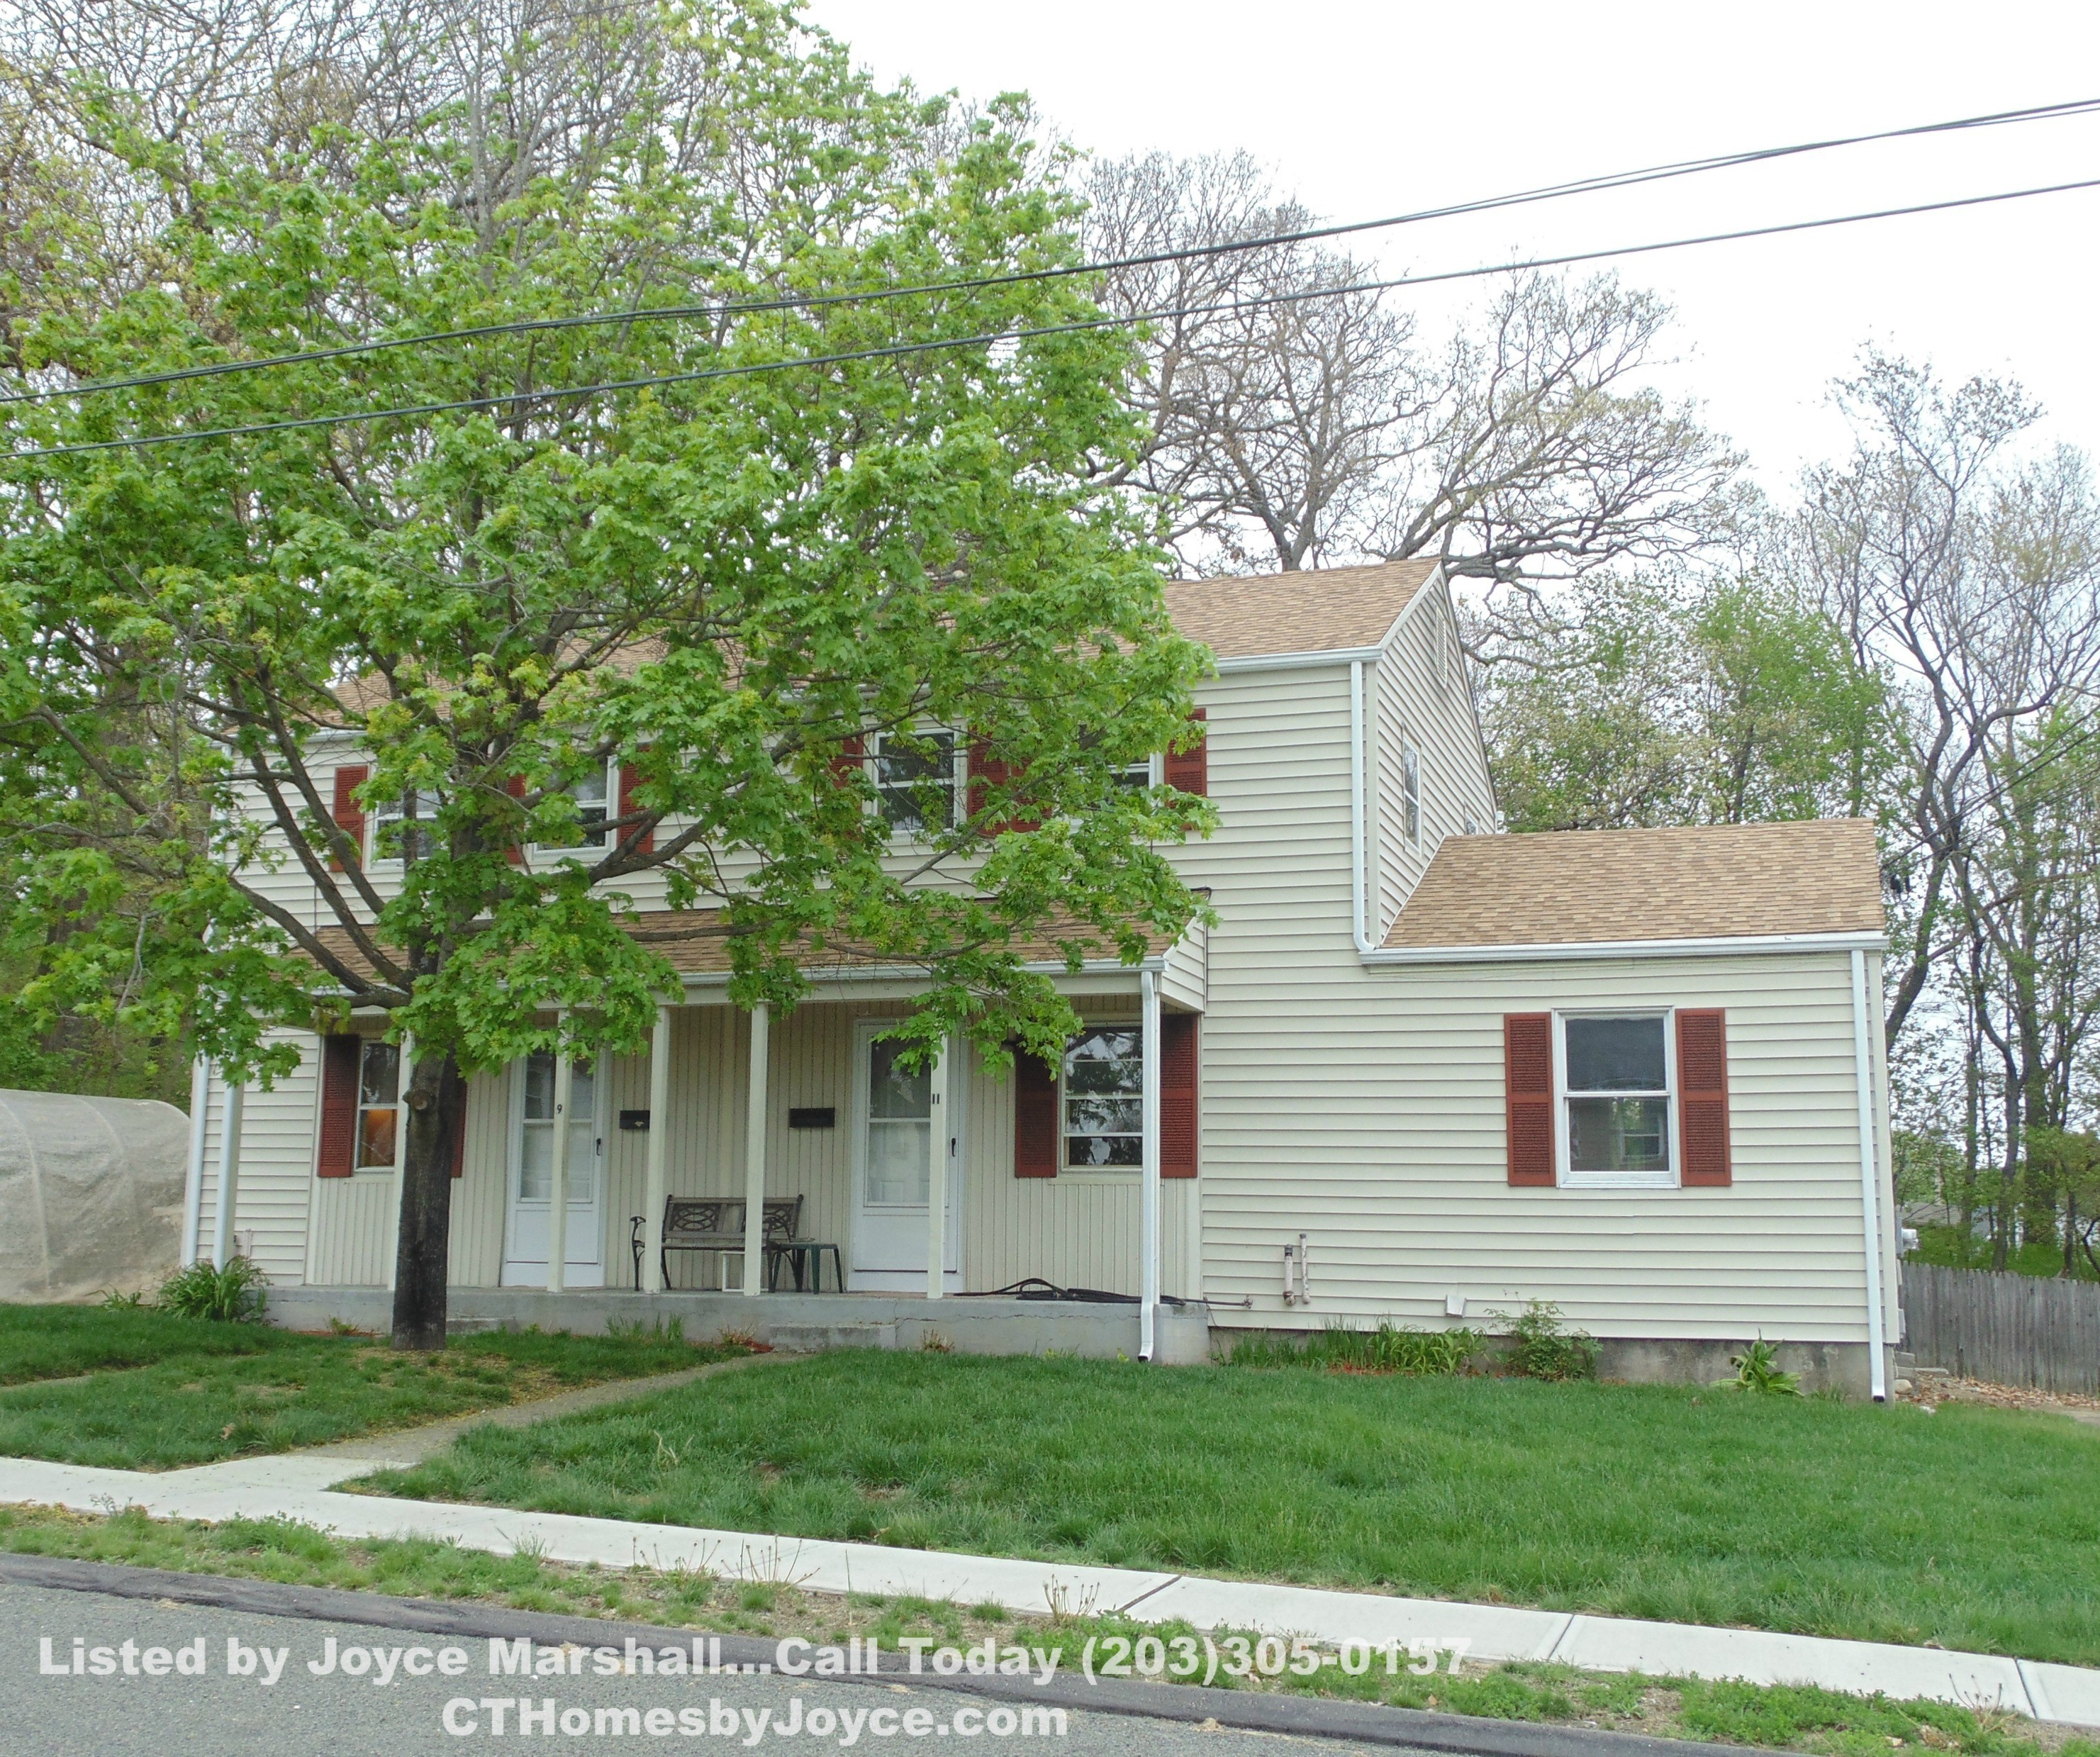 Two Family Home for sale in Shelton CT